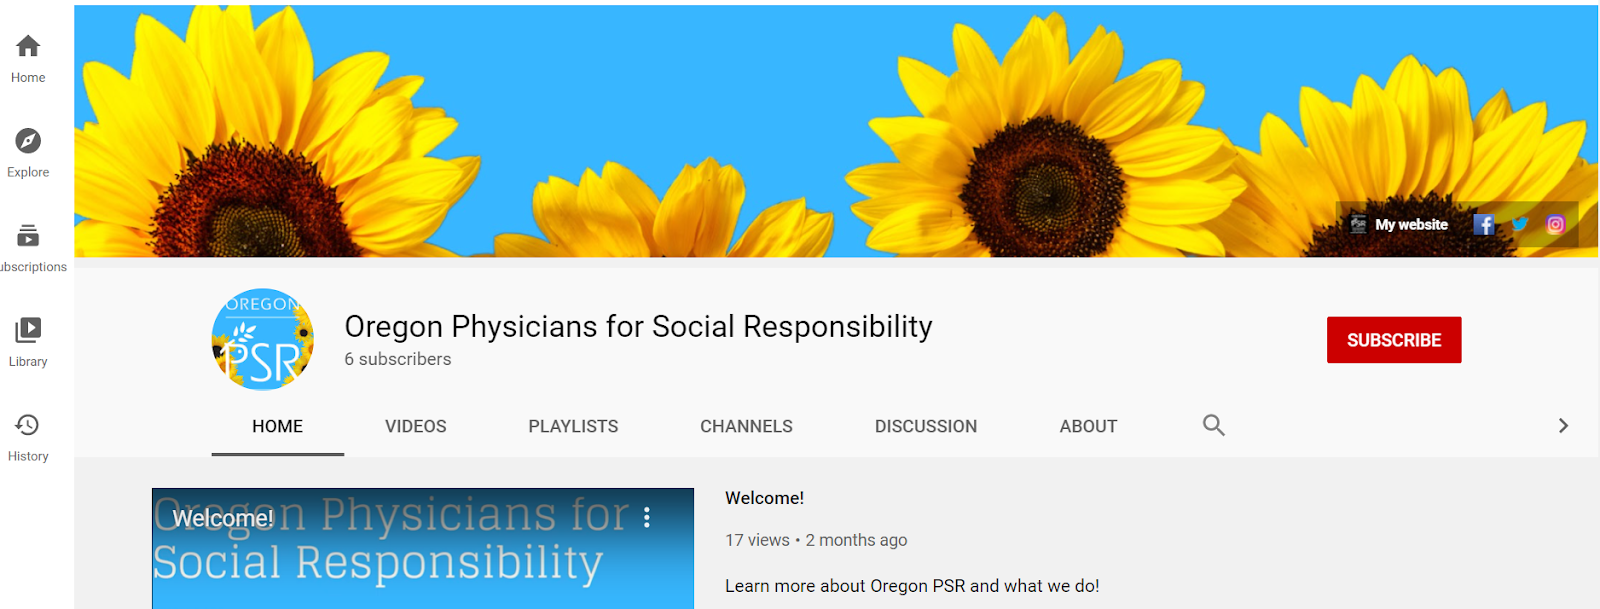 Subscribe_to_Oregon_PSR's_YouTube_page_graphic.png